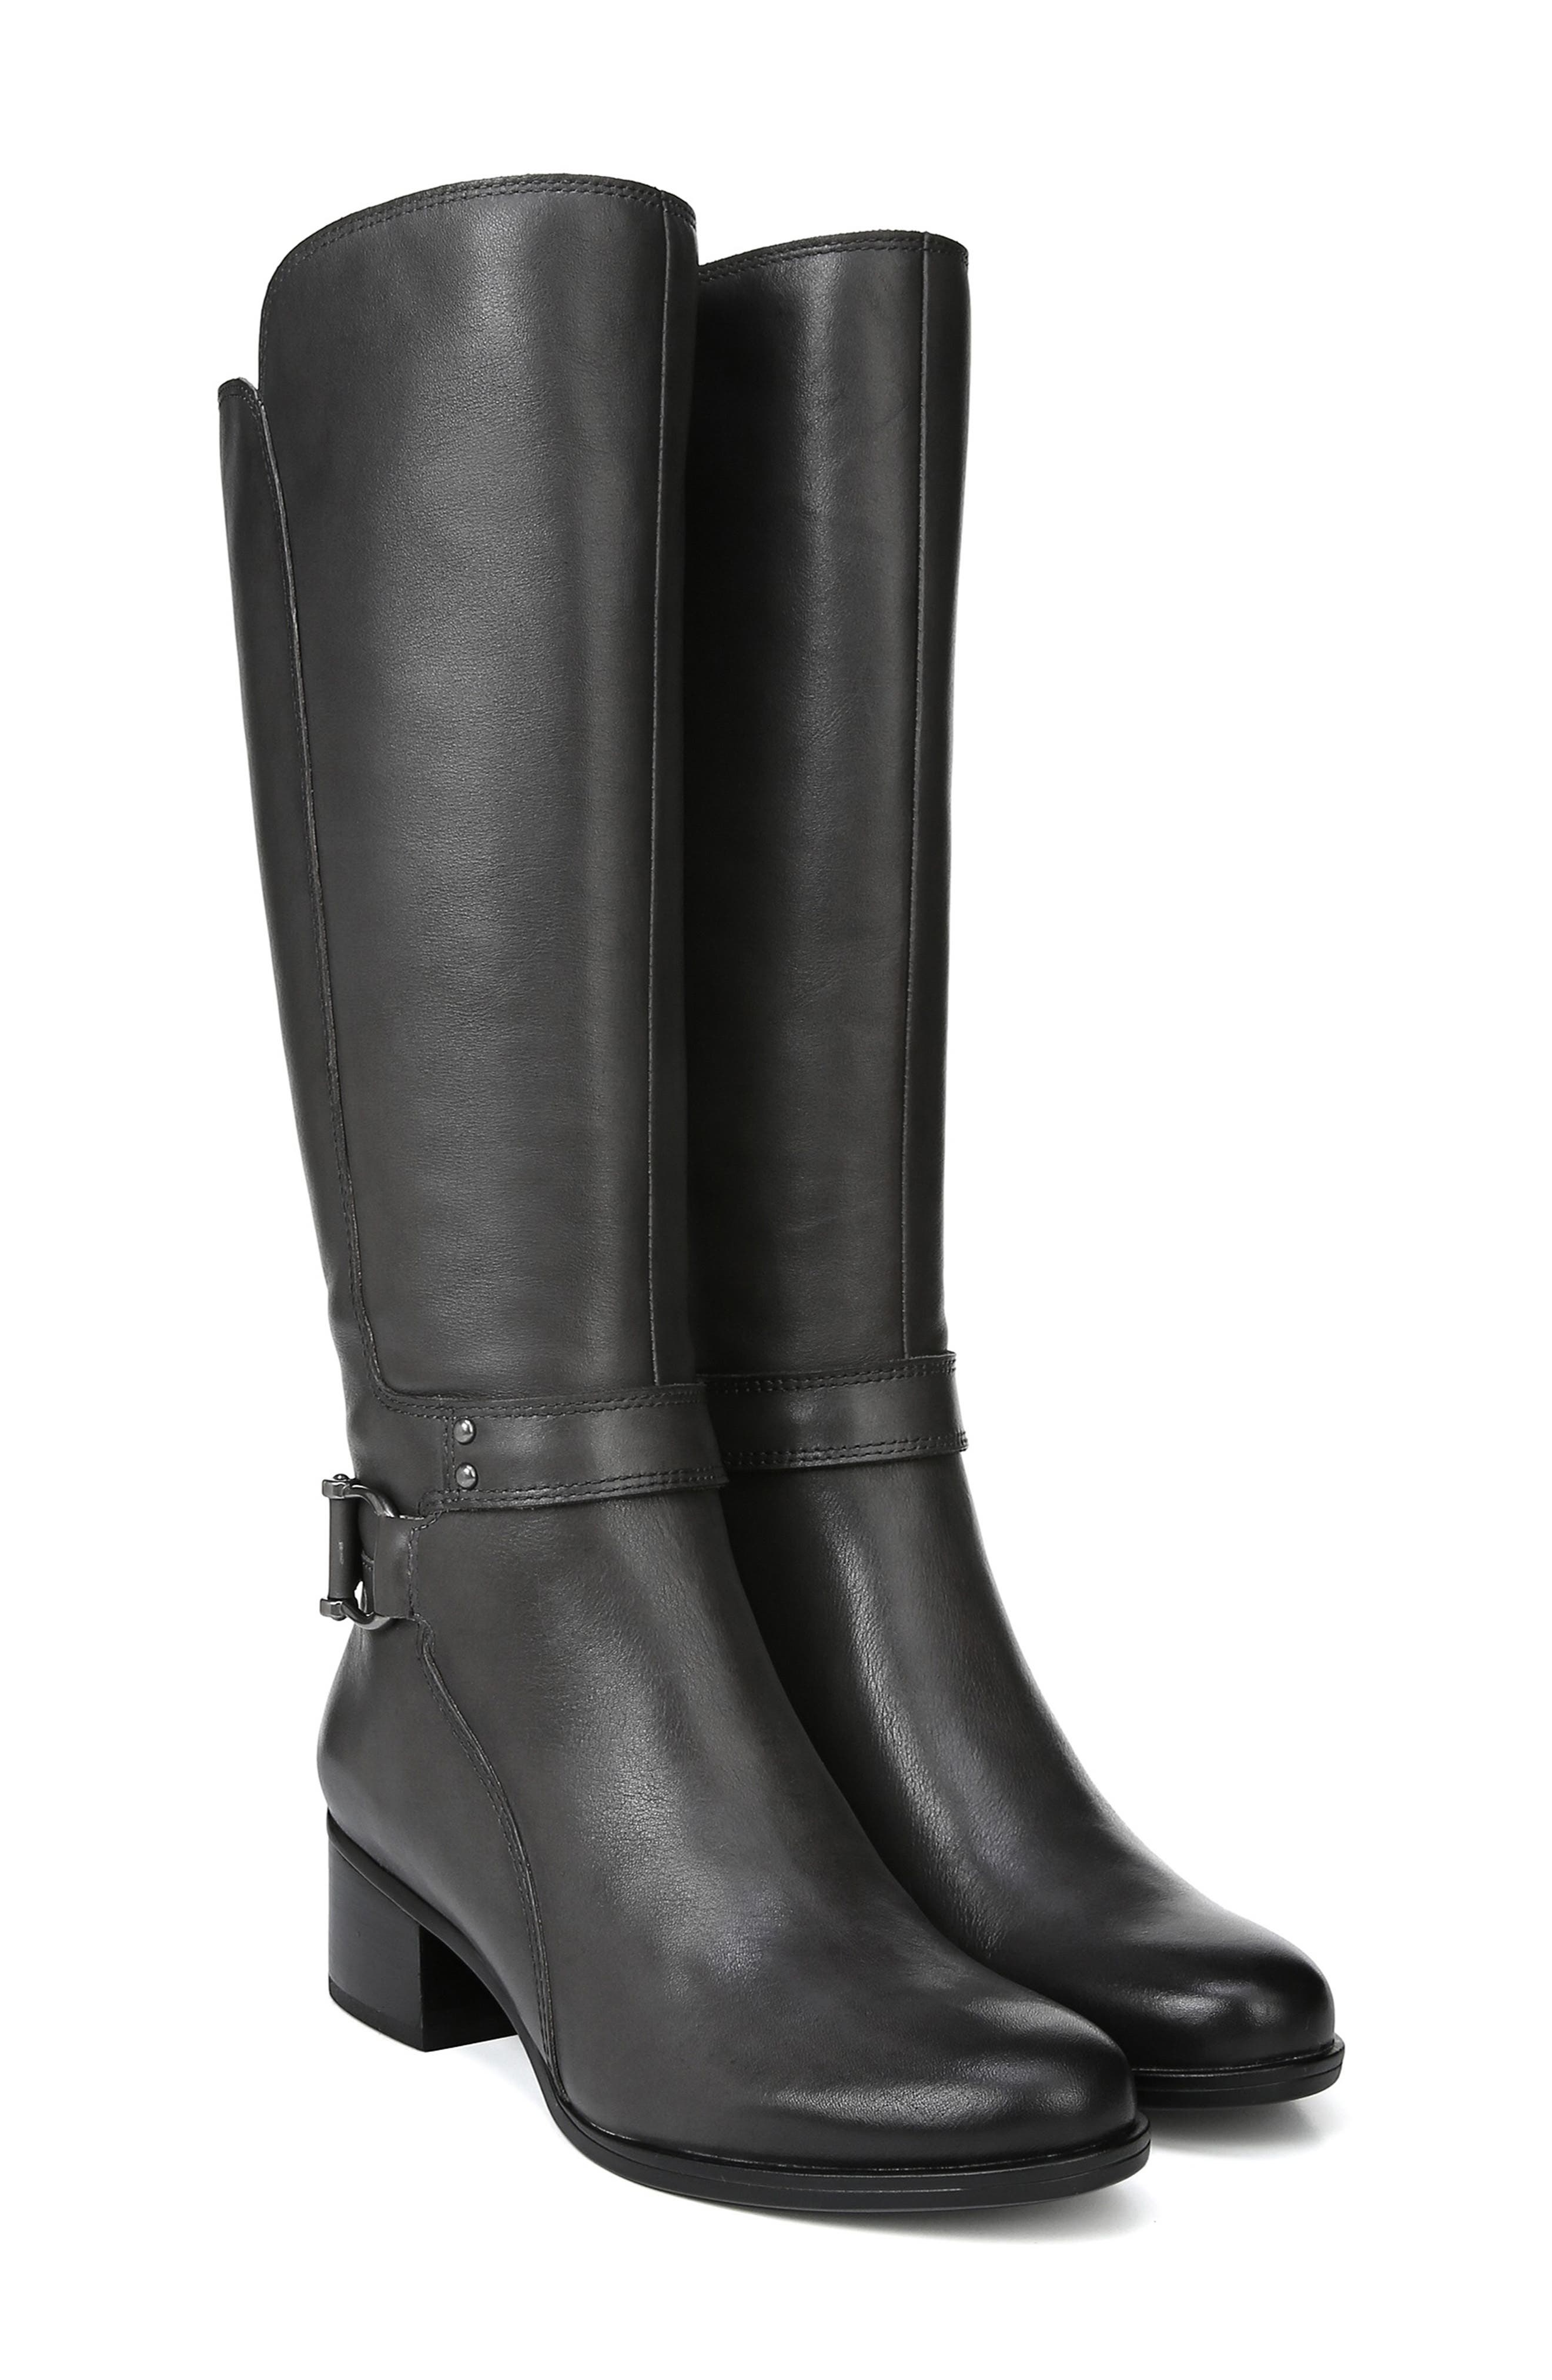 Dane Knee High Riding Boot,                             Alternate thumbnail 9, color,                             GREY LEATHER